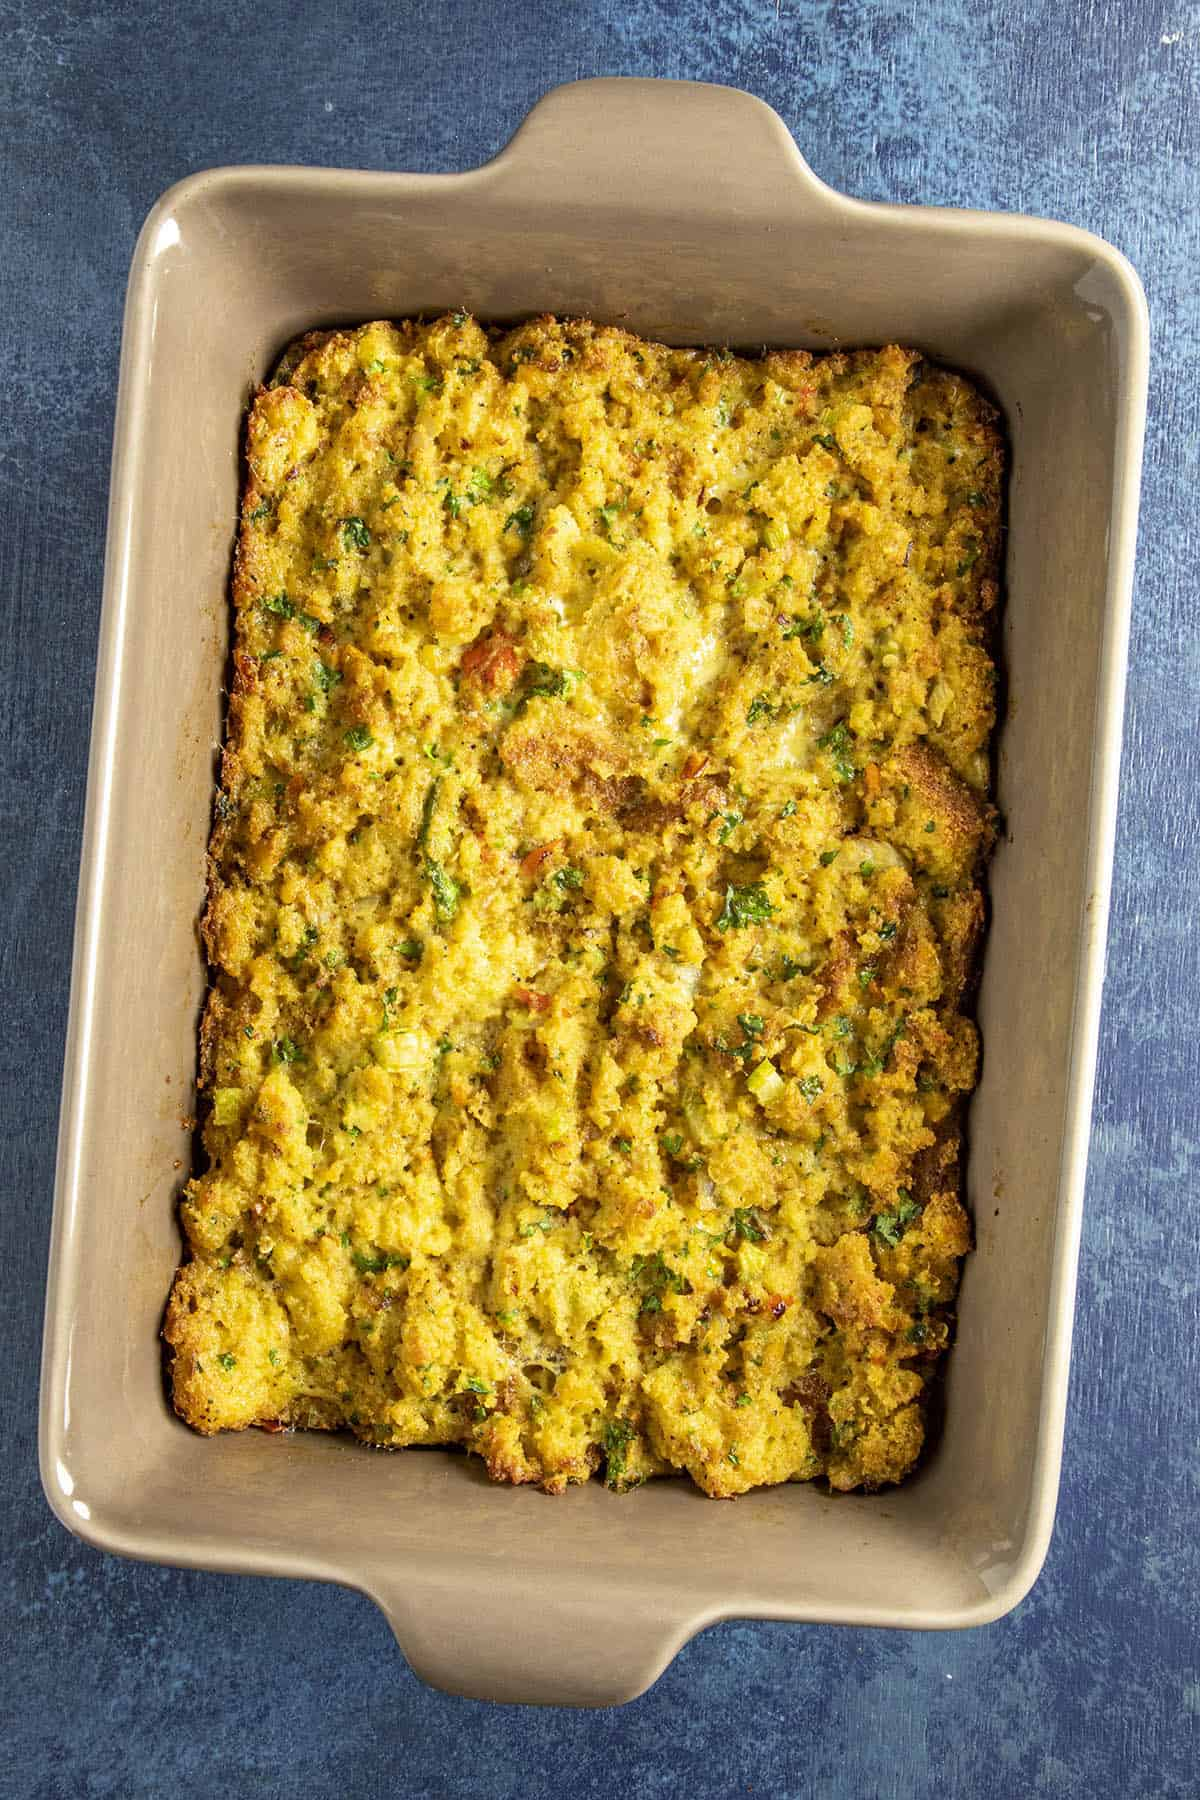 Cornbread Dressing, just out of the oven